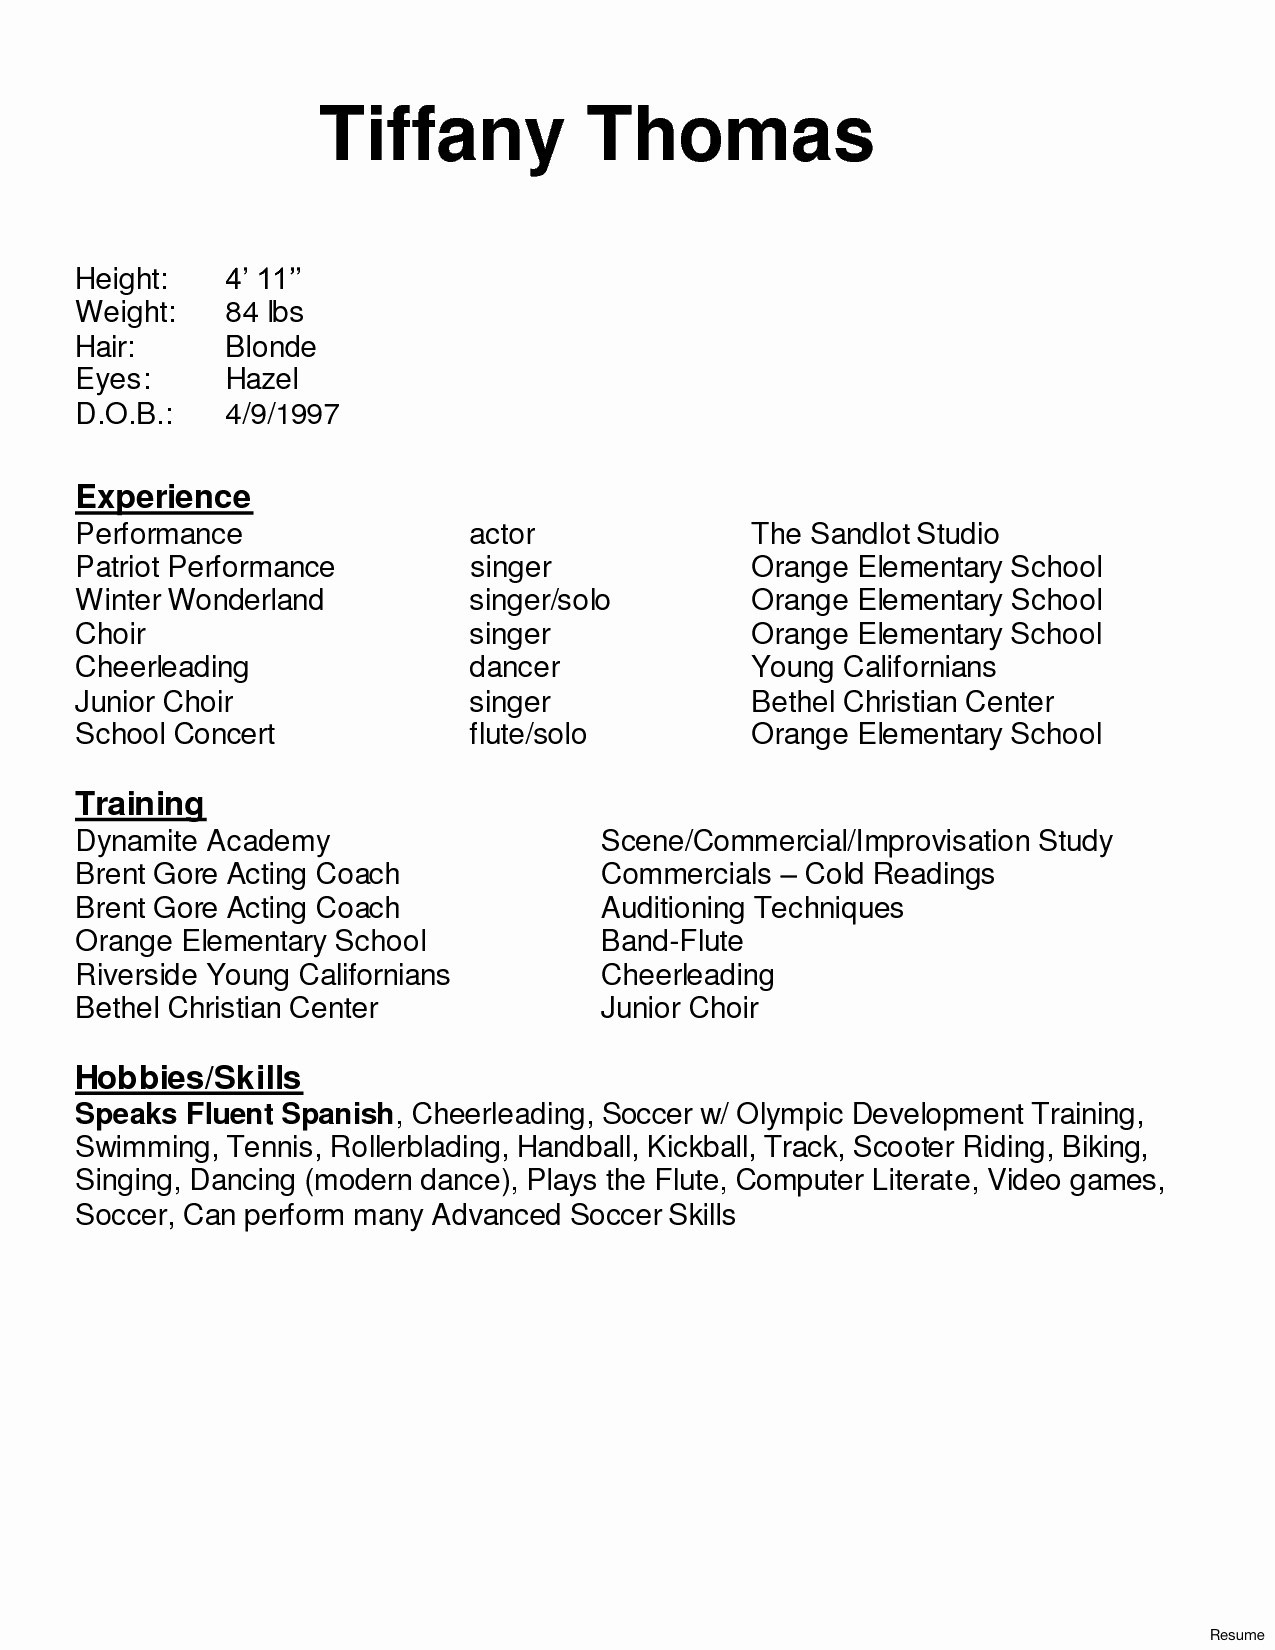 Soccer Resume Template for College - Puter Literacy Skills Examples for Resume Lovely Free Acting